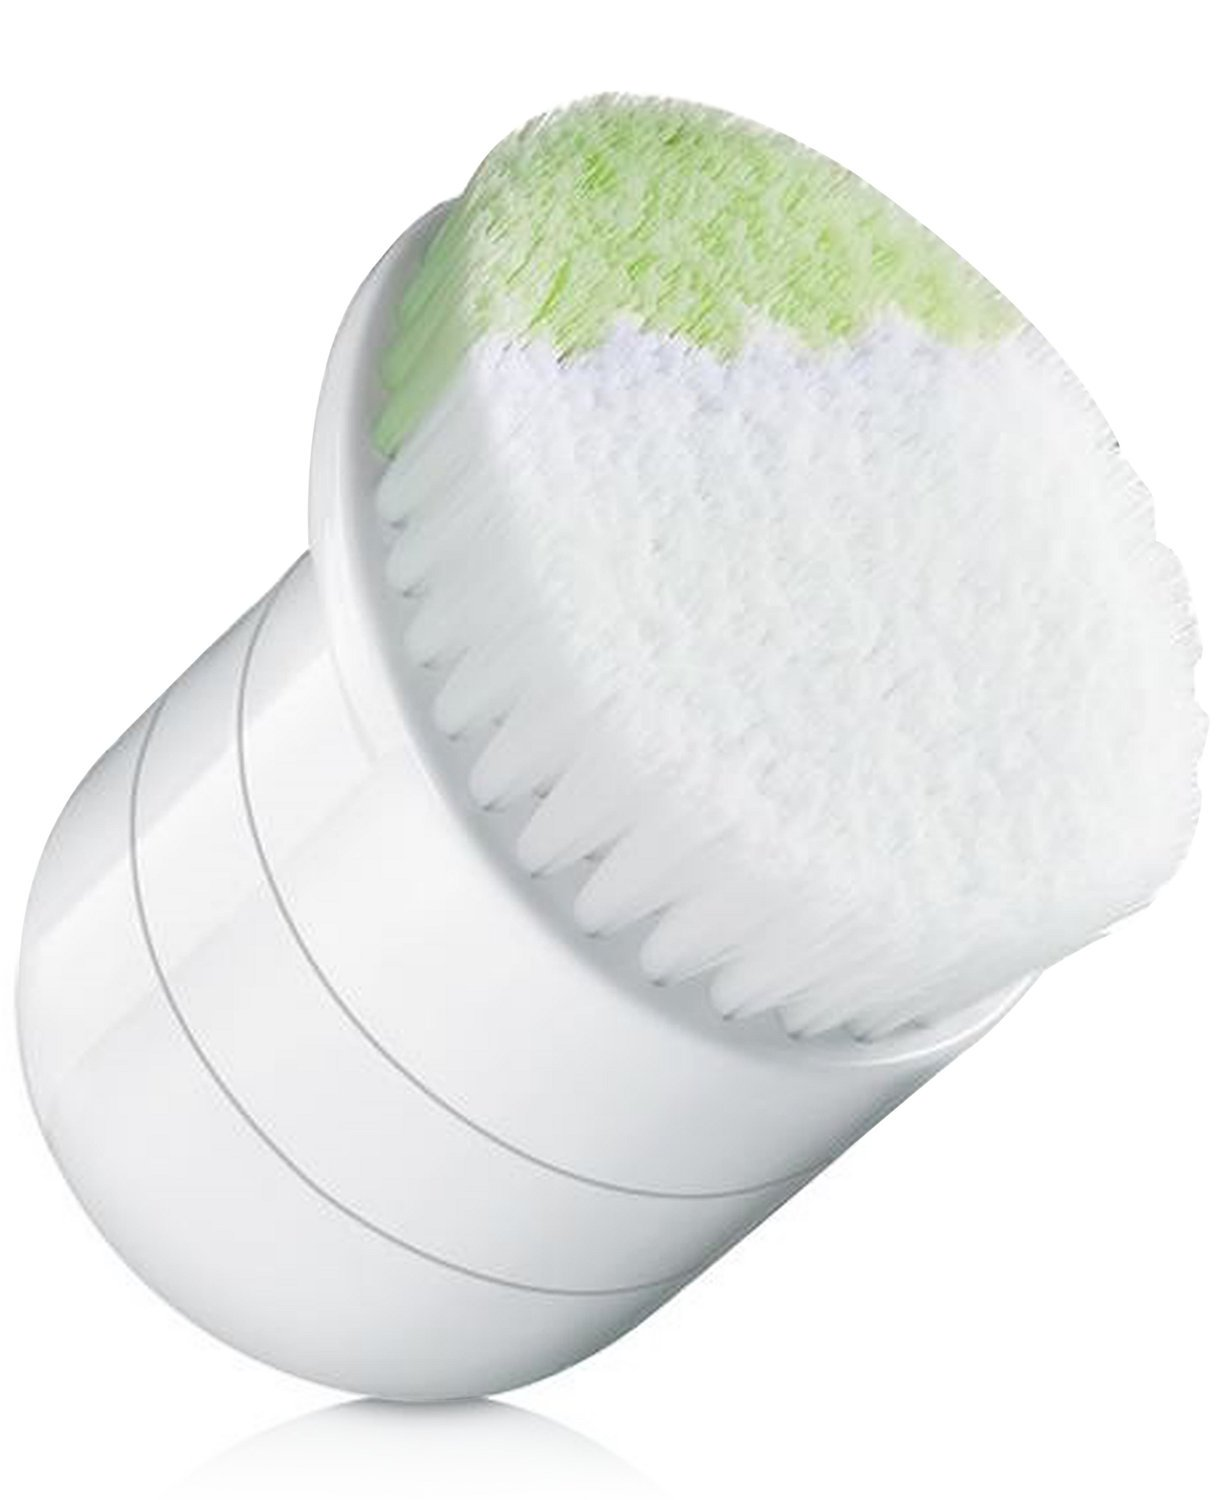 CLINIQUE Sonic System Purifying Cleansing Brush Non-Rechargeable Travel Size (White)